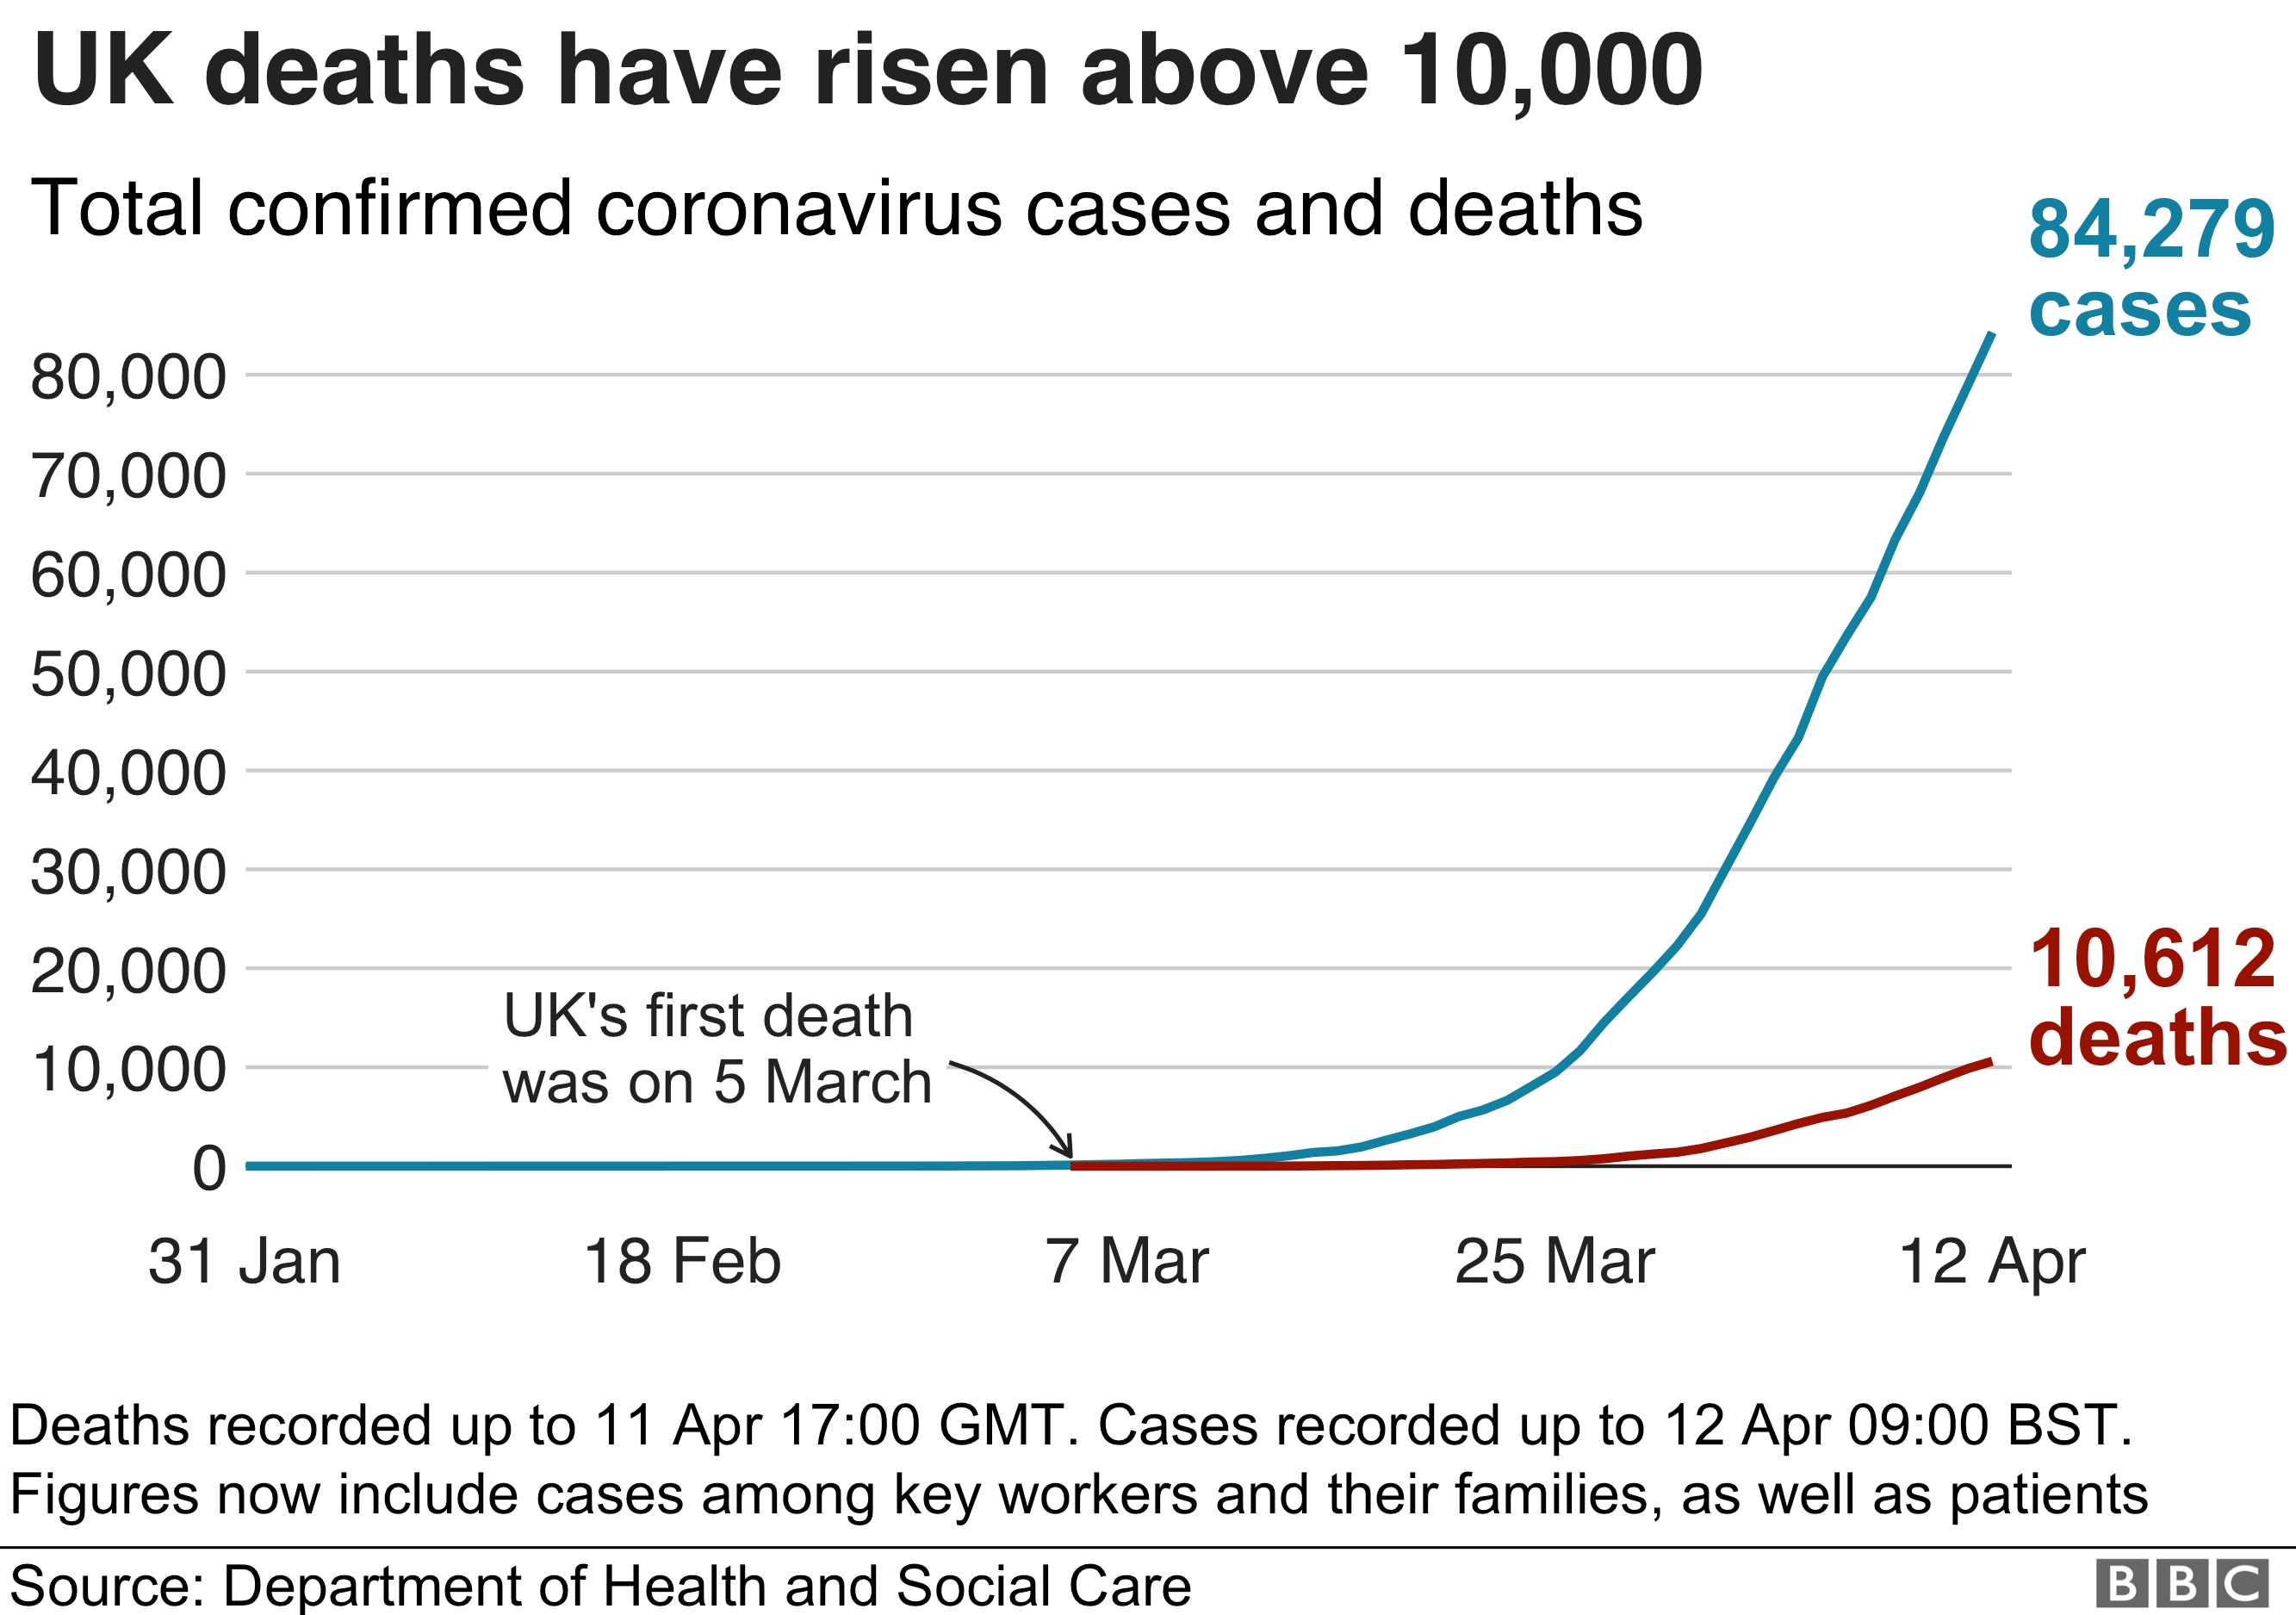 Graphic showing UK deaths